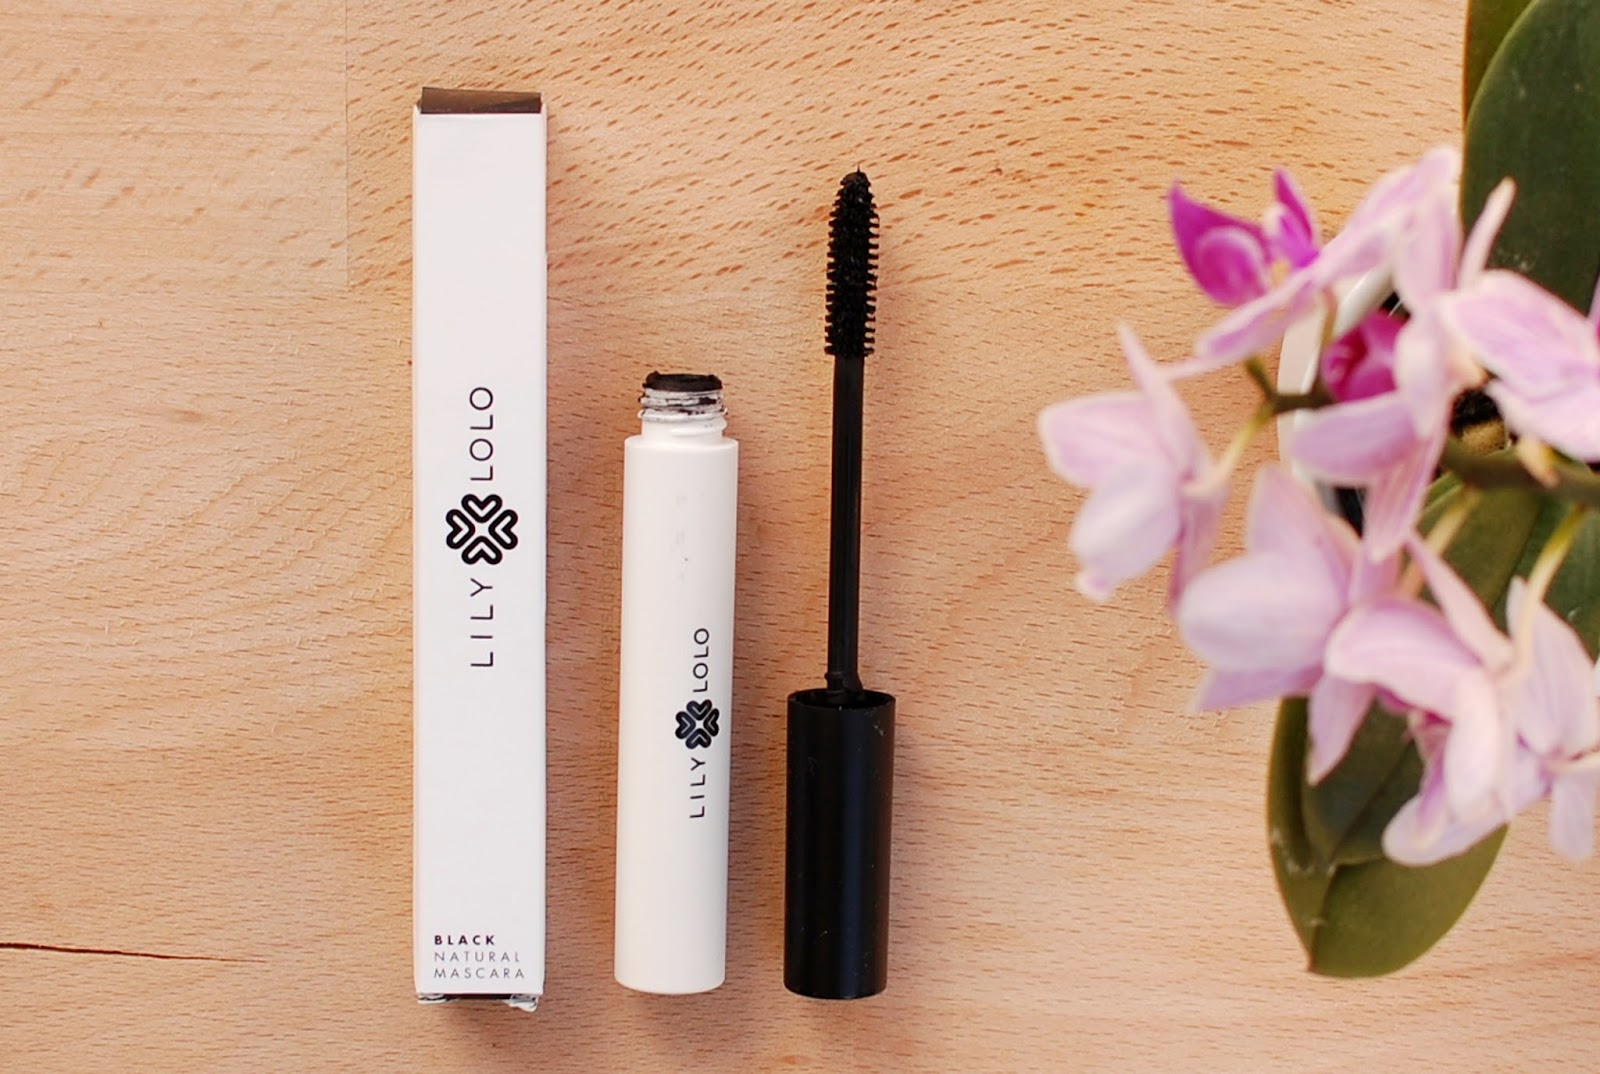 Lily Lolo Natural Mascara improved formulation